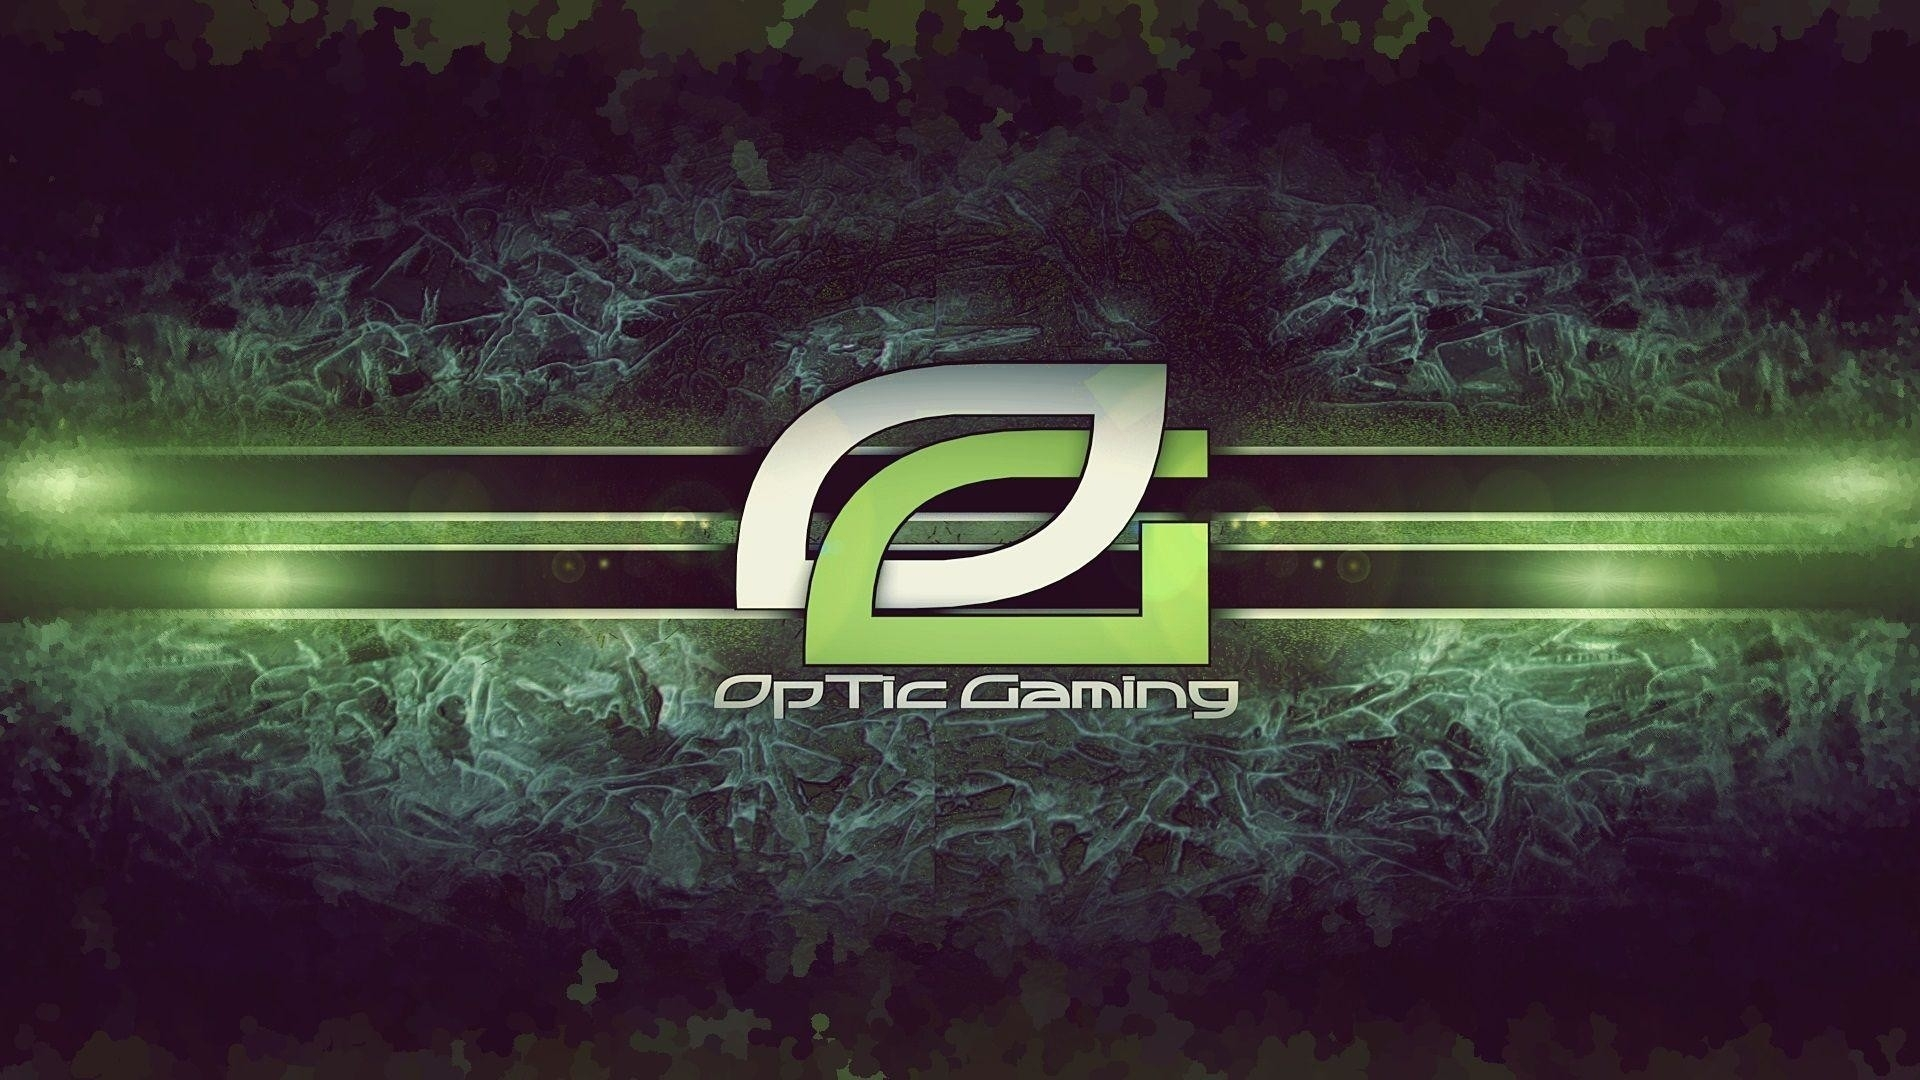 optic gaming hd wallpaper (84+ images)